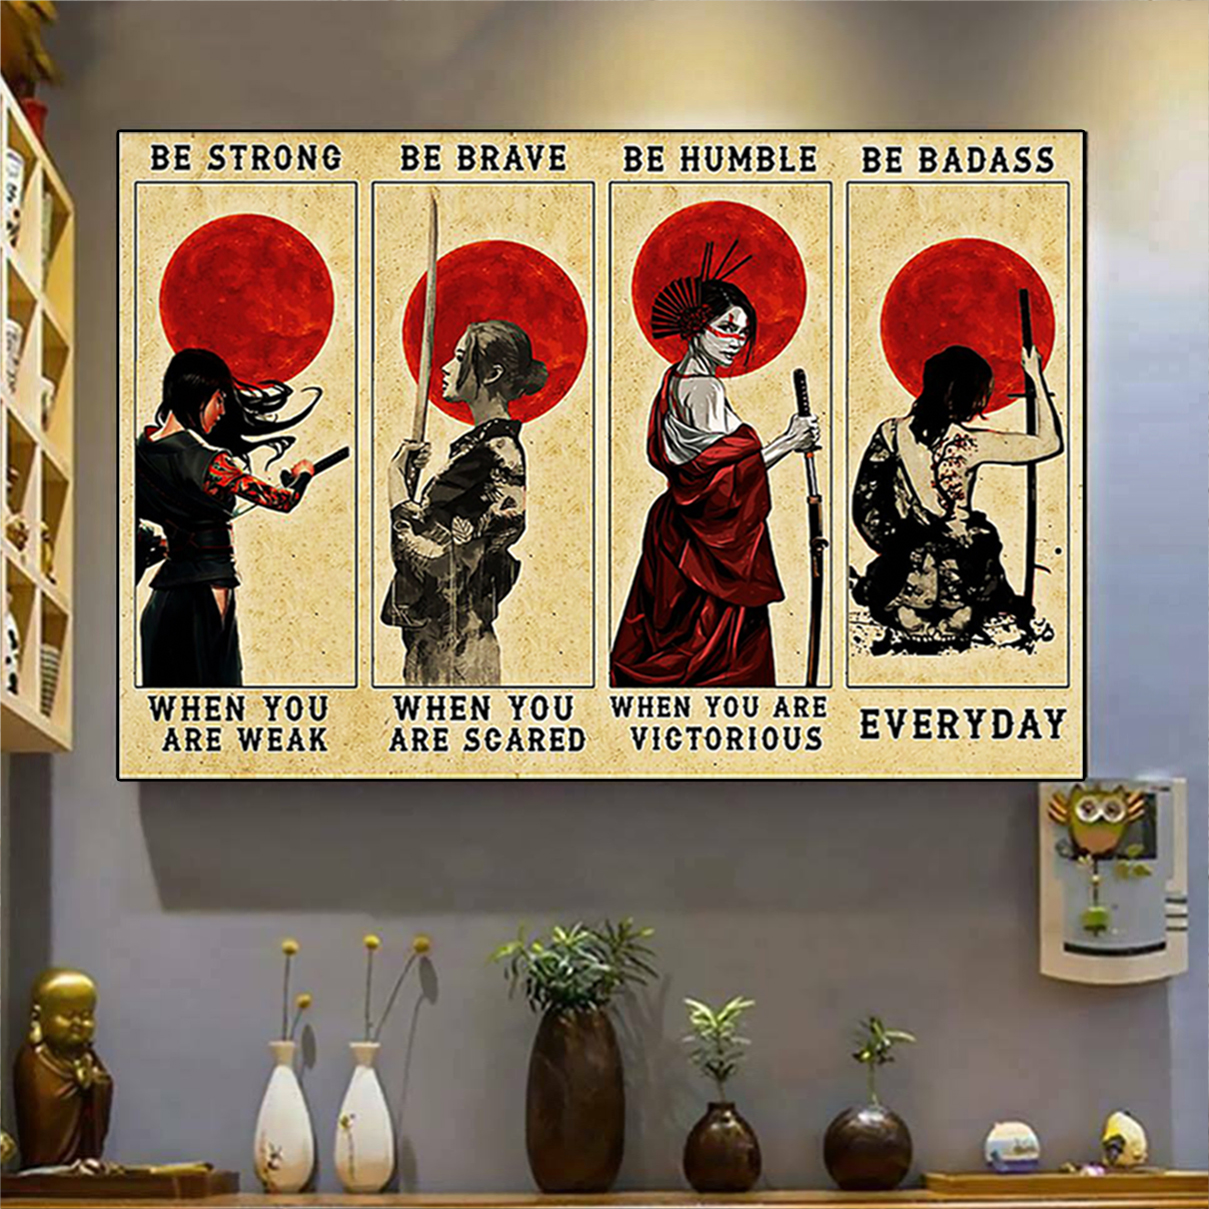 Female samurai be strong be brave be humble be badass poster A1